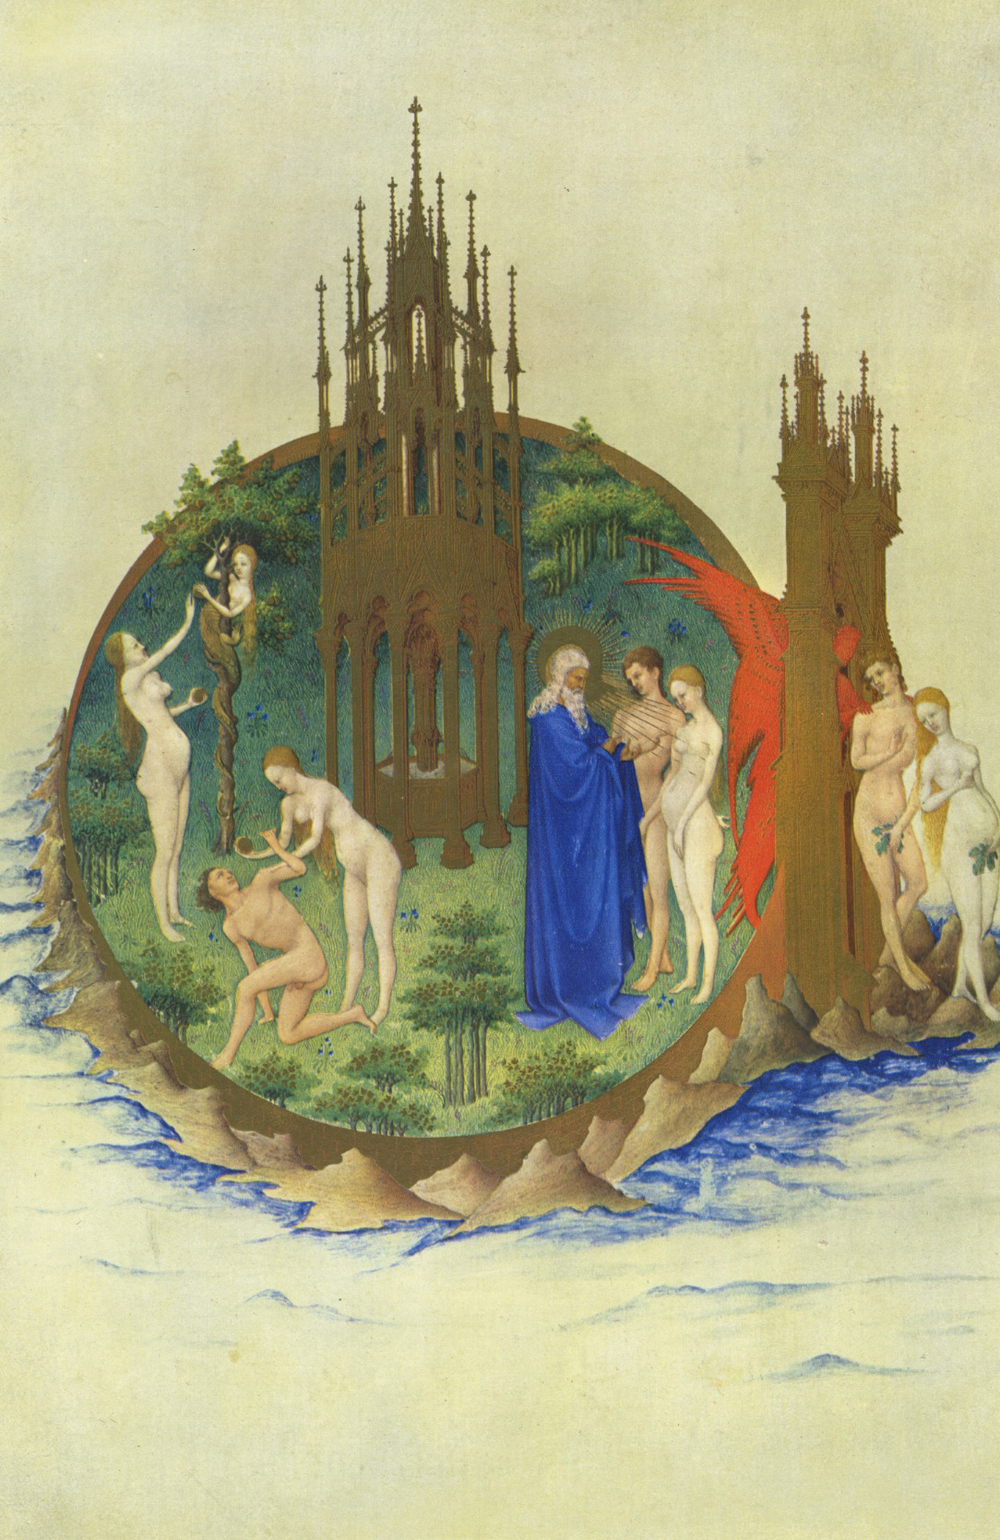 Limbourg Brothers,  The Tres Riches Heures of Jean De Berry, The Temptation and the Fall,  Ink on vellum, 1413-1416